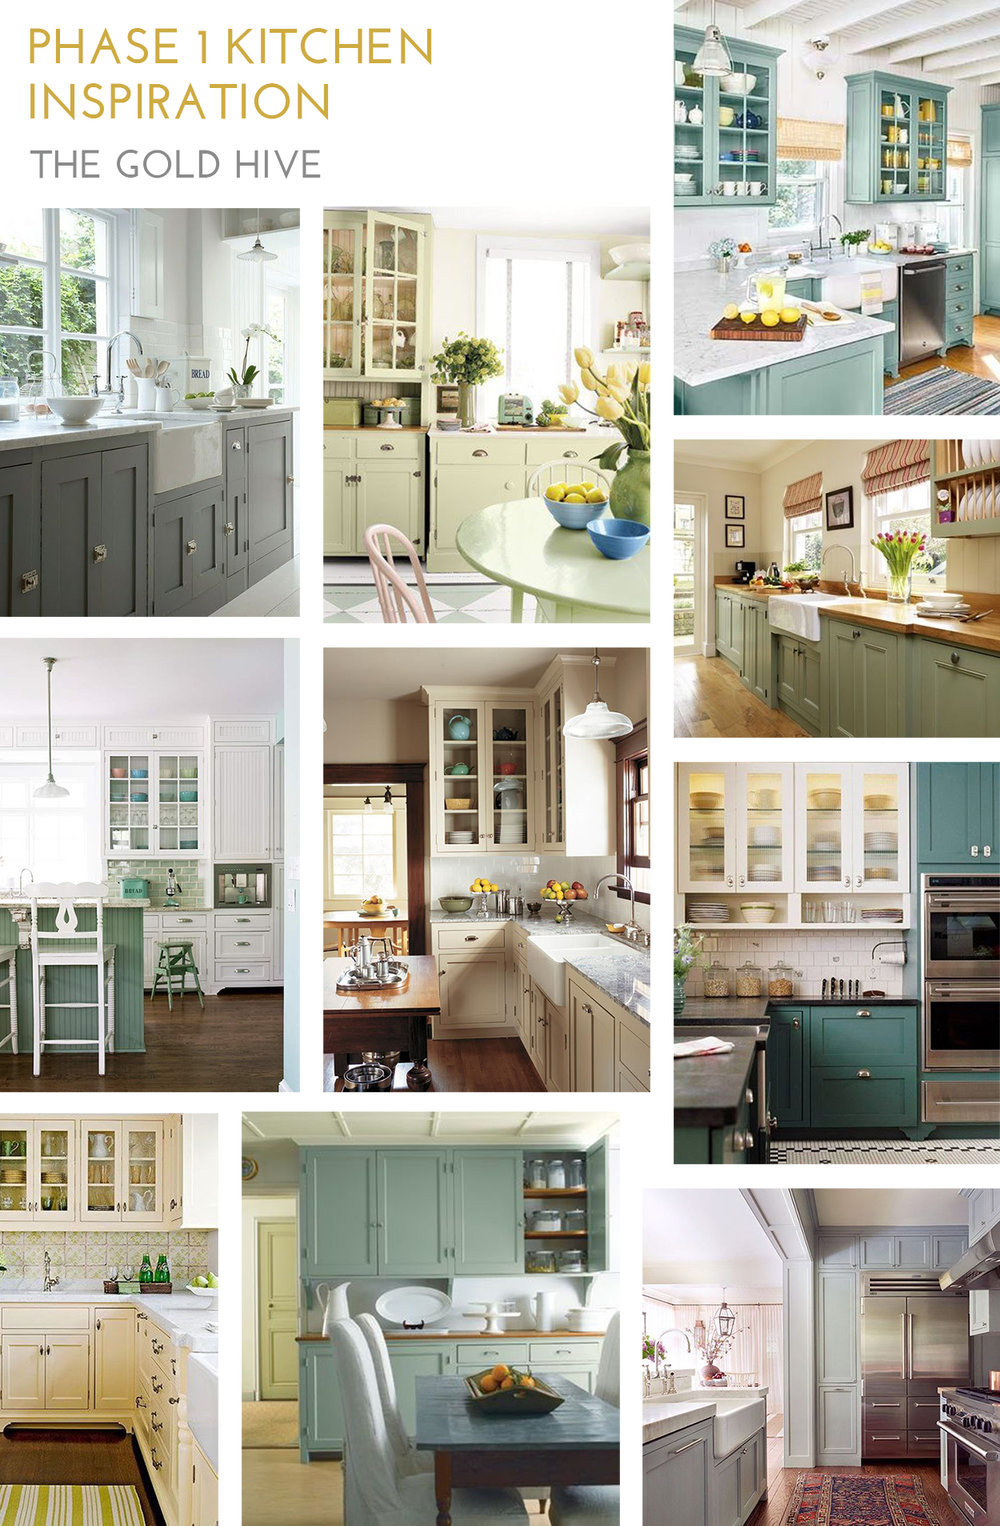 The Gold Hive Kitchen Inspiration